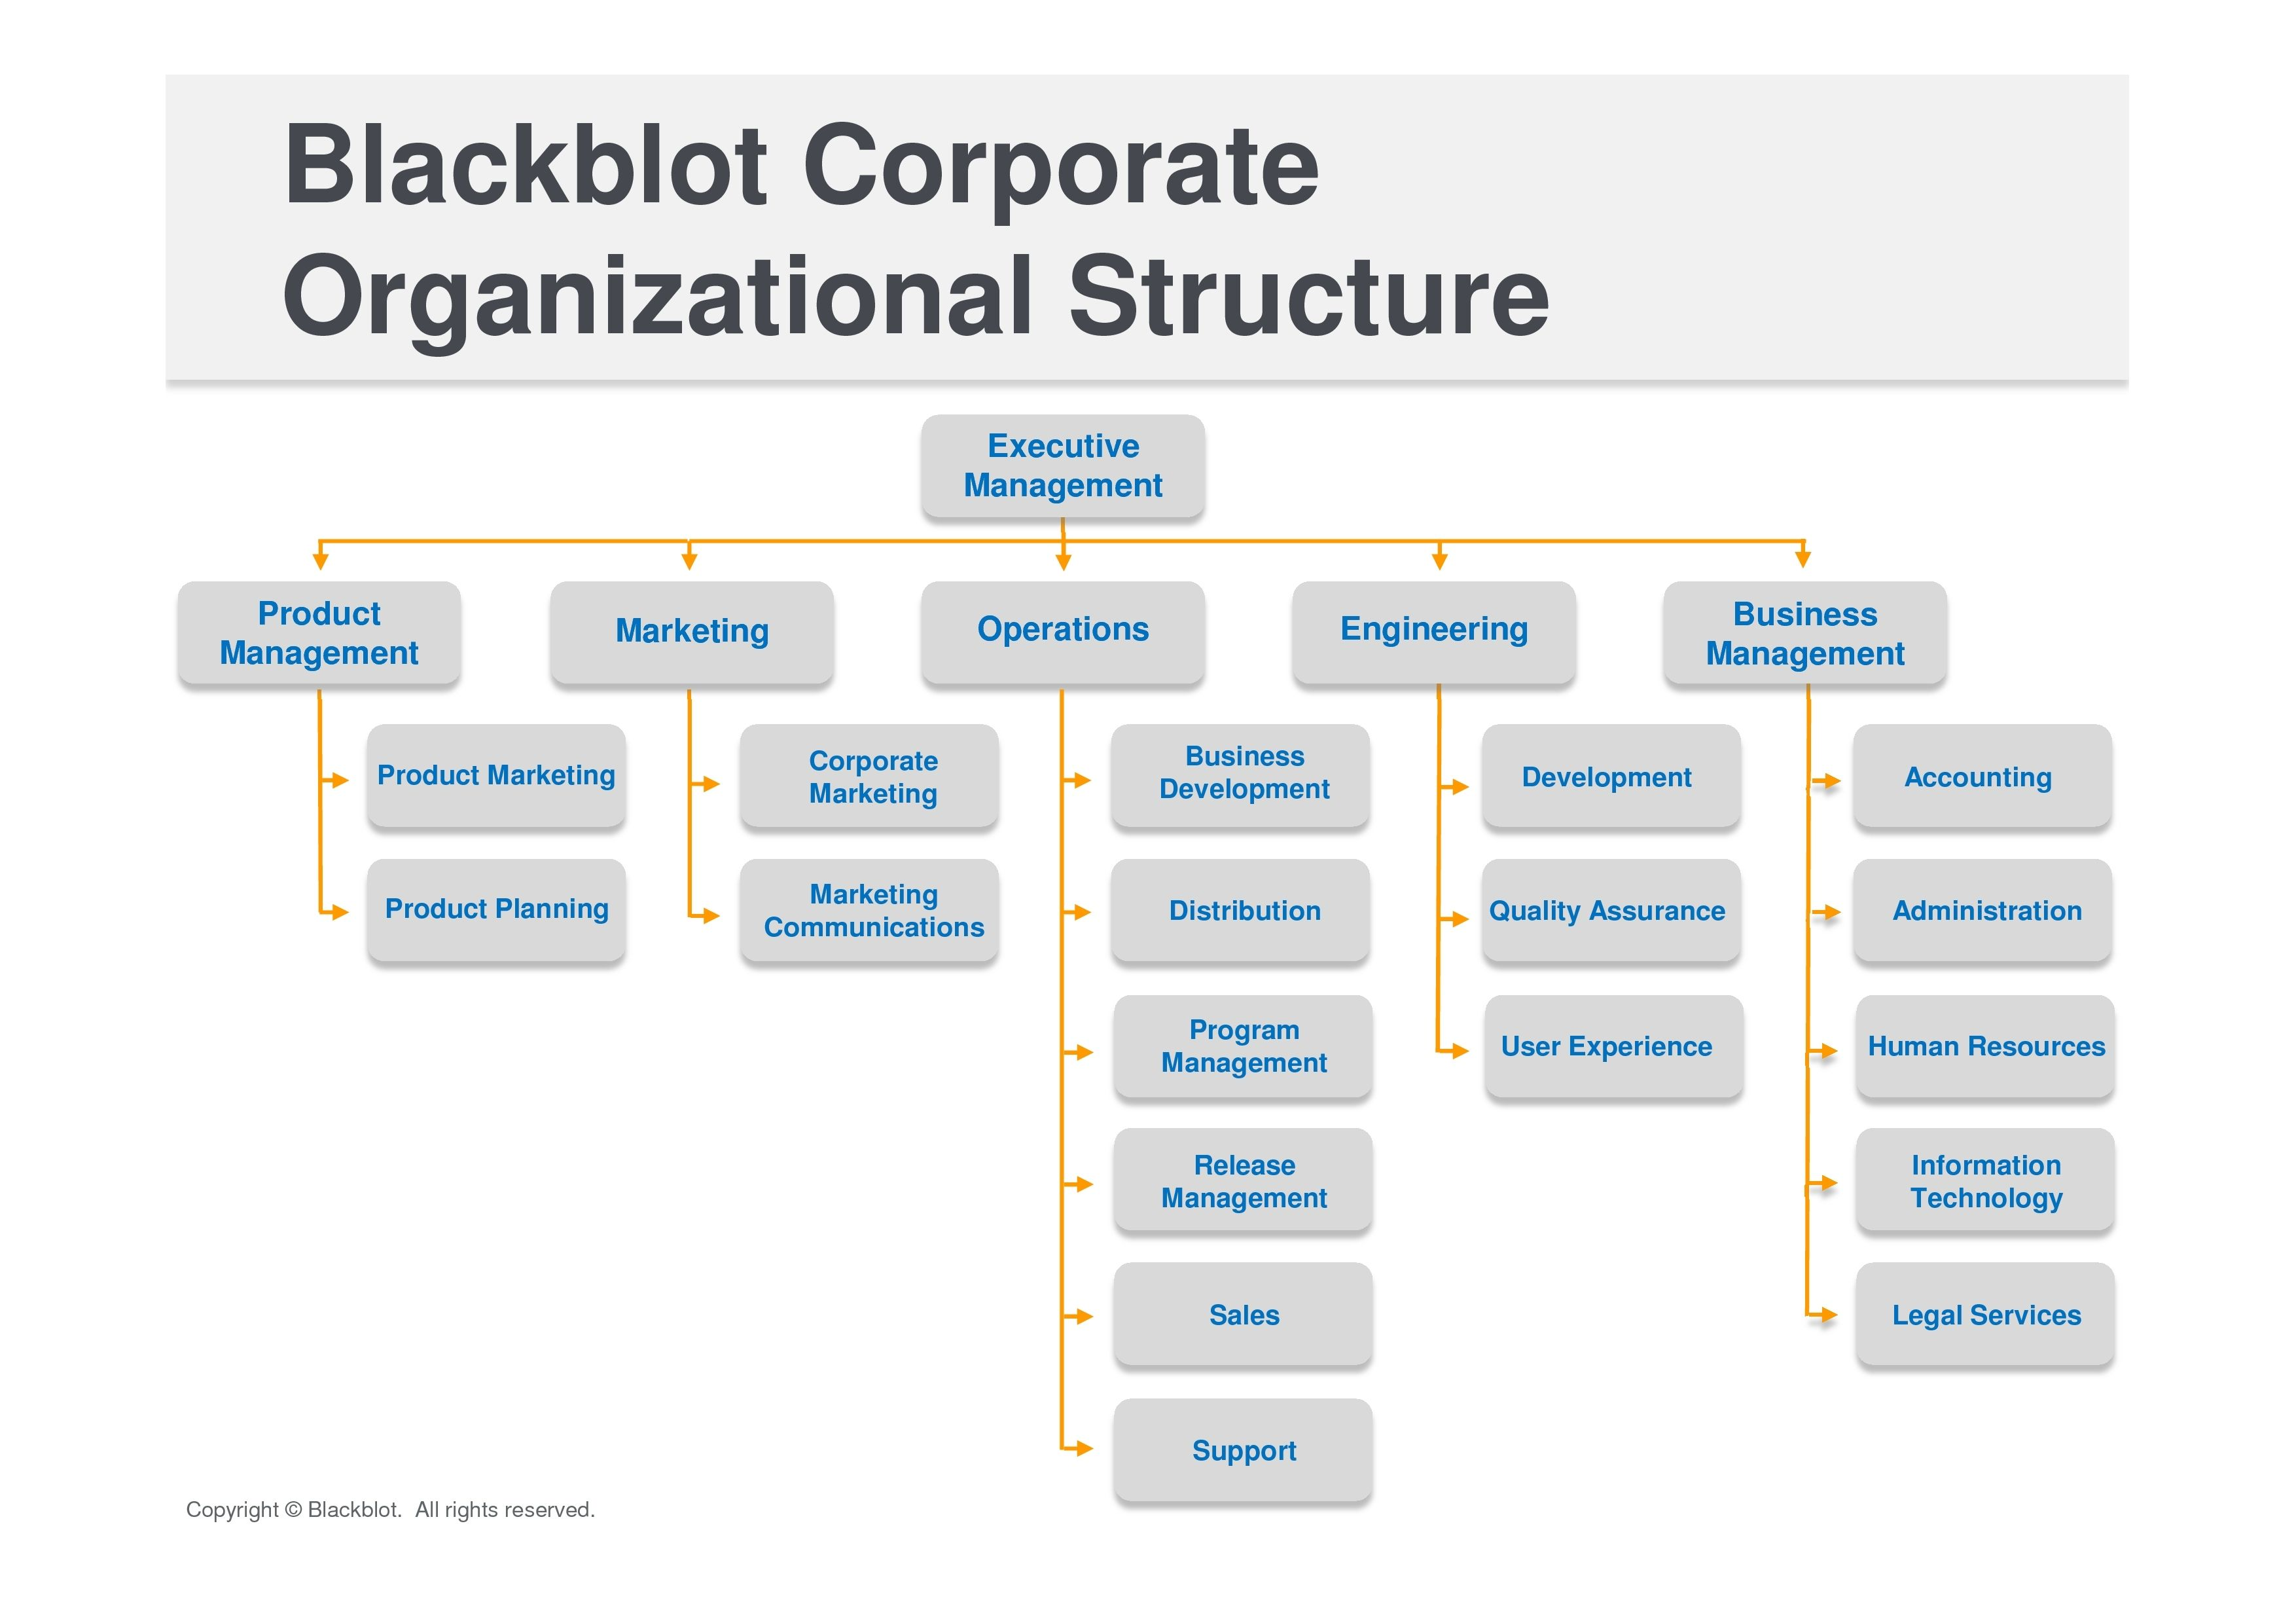 organizational security plan Security authorization the official management decision made by a senior organizational official to authorize operation of an information system and to accept certain risks to organizational operations and assets, individuals, and other organizations.